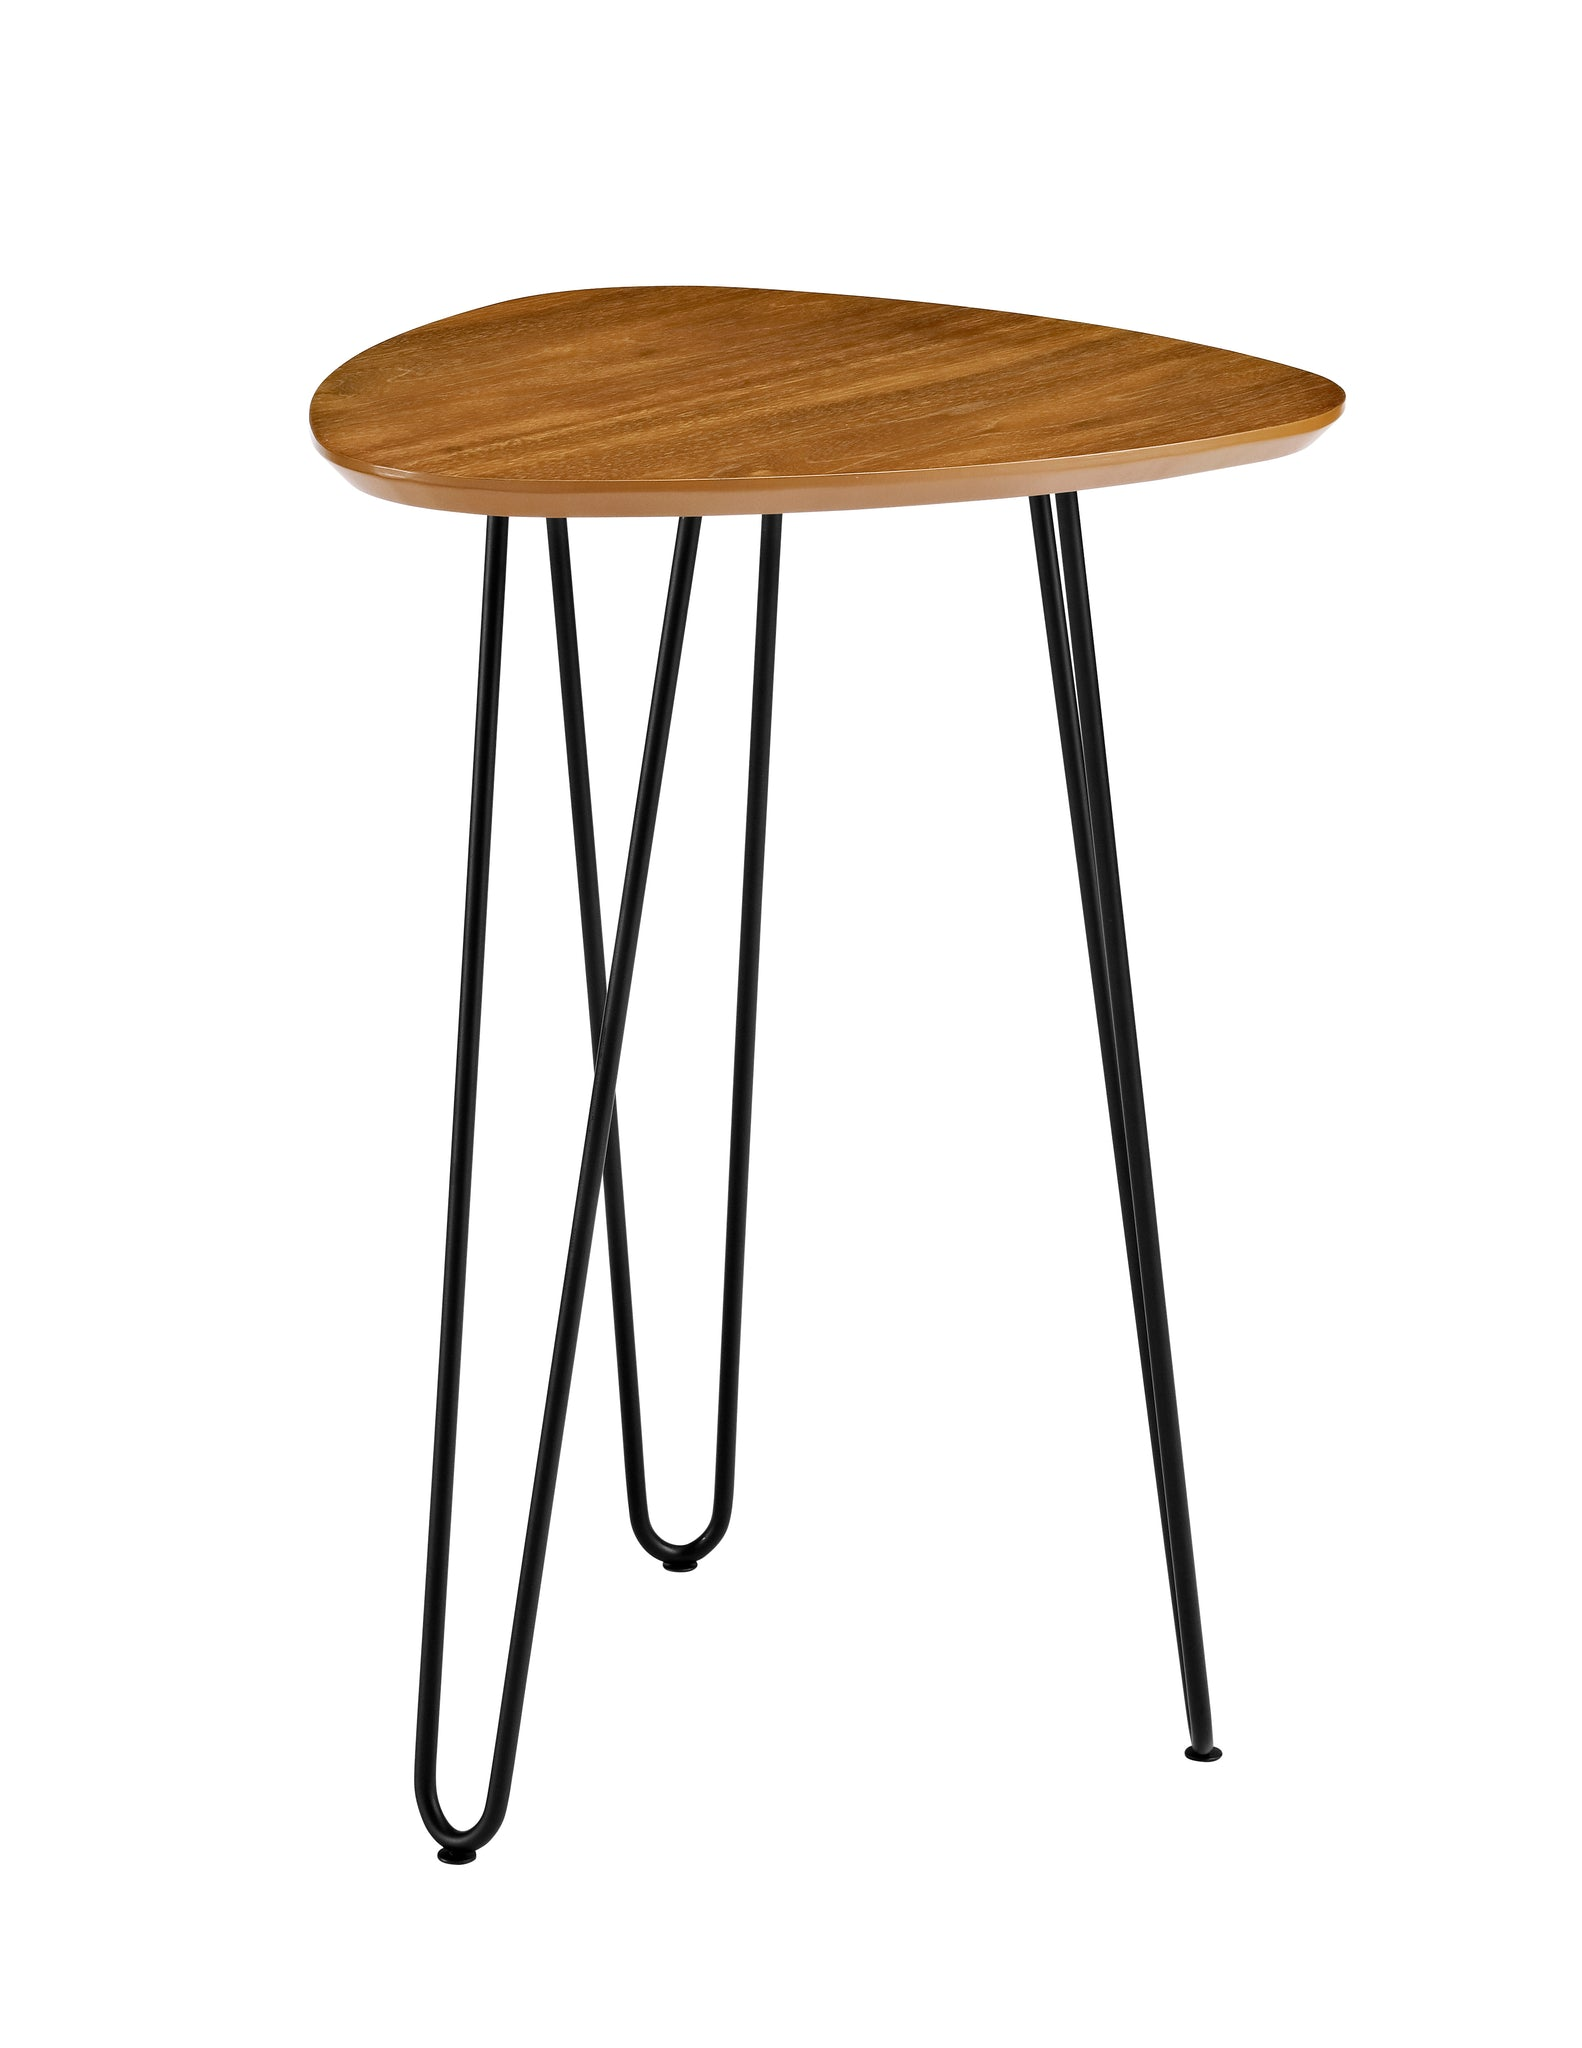 "18"" Hairpin Leg Wood Side Table - Walnut"